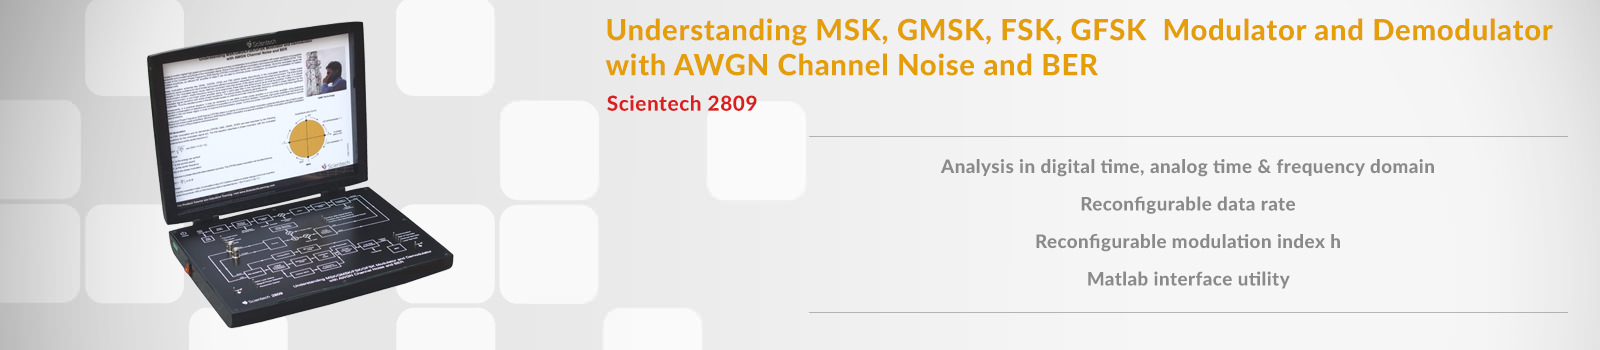 Understanding MSK, GMSK, FSK, GFSK Modulator and Demodulator with AWGN Channel Noise and BER